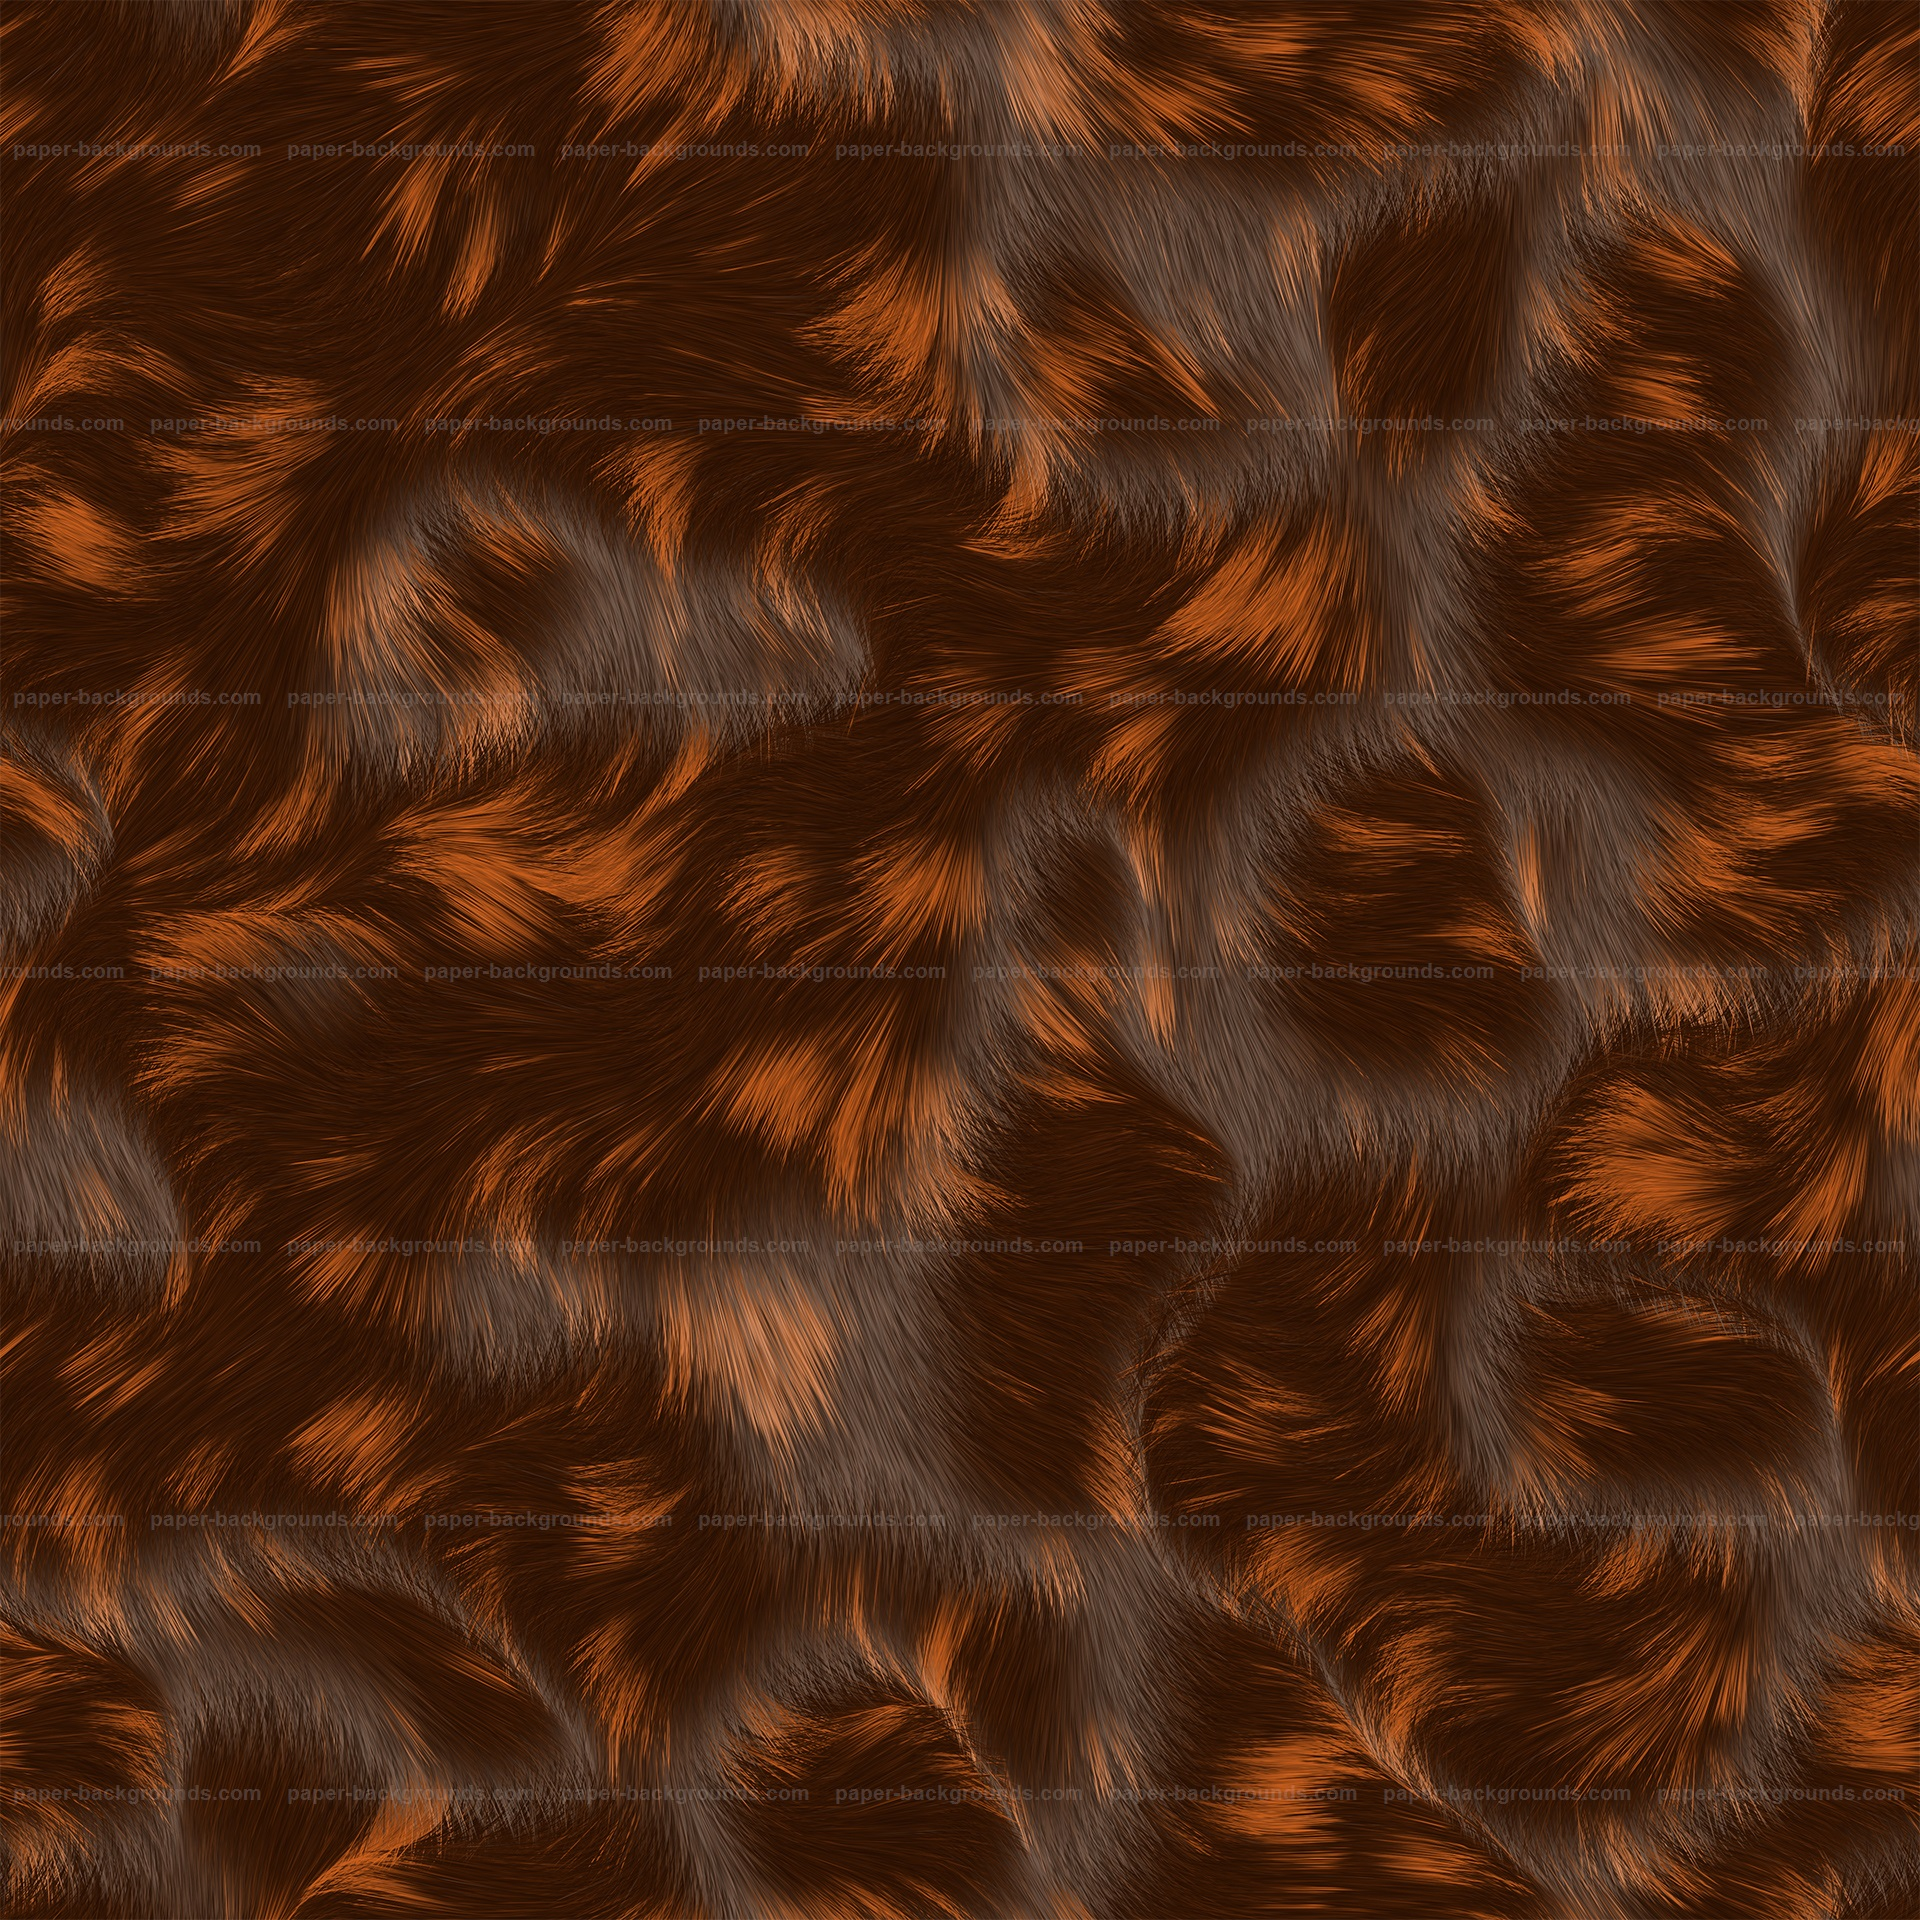 Brown bed sheet textures - Seamless Brown Animal For Bed Head Texture Hd